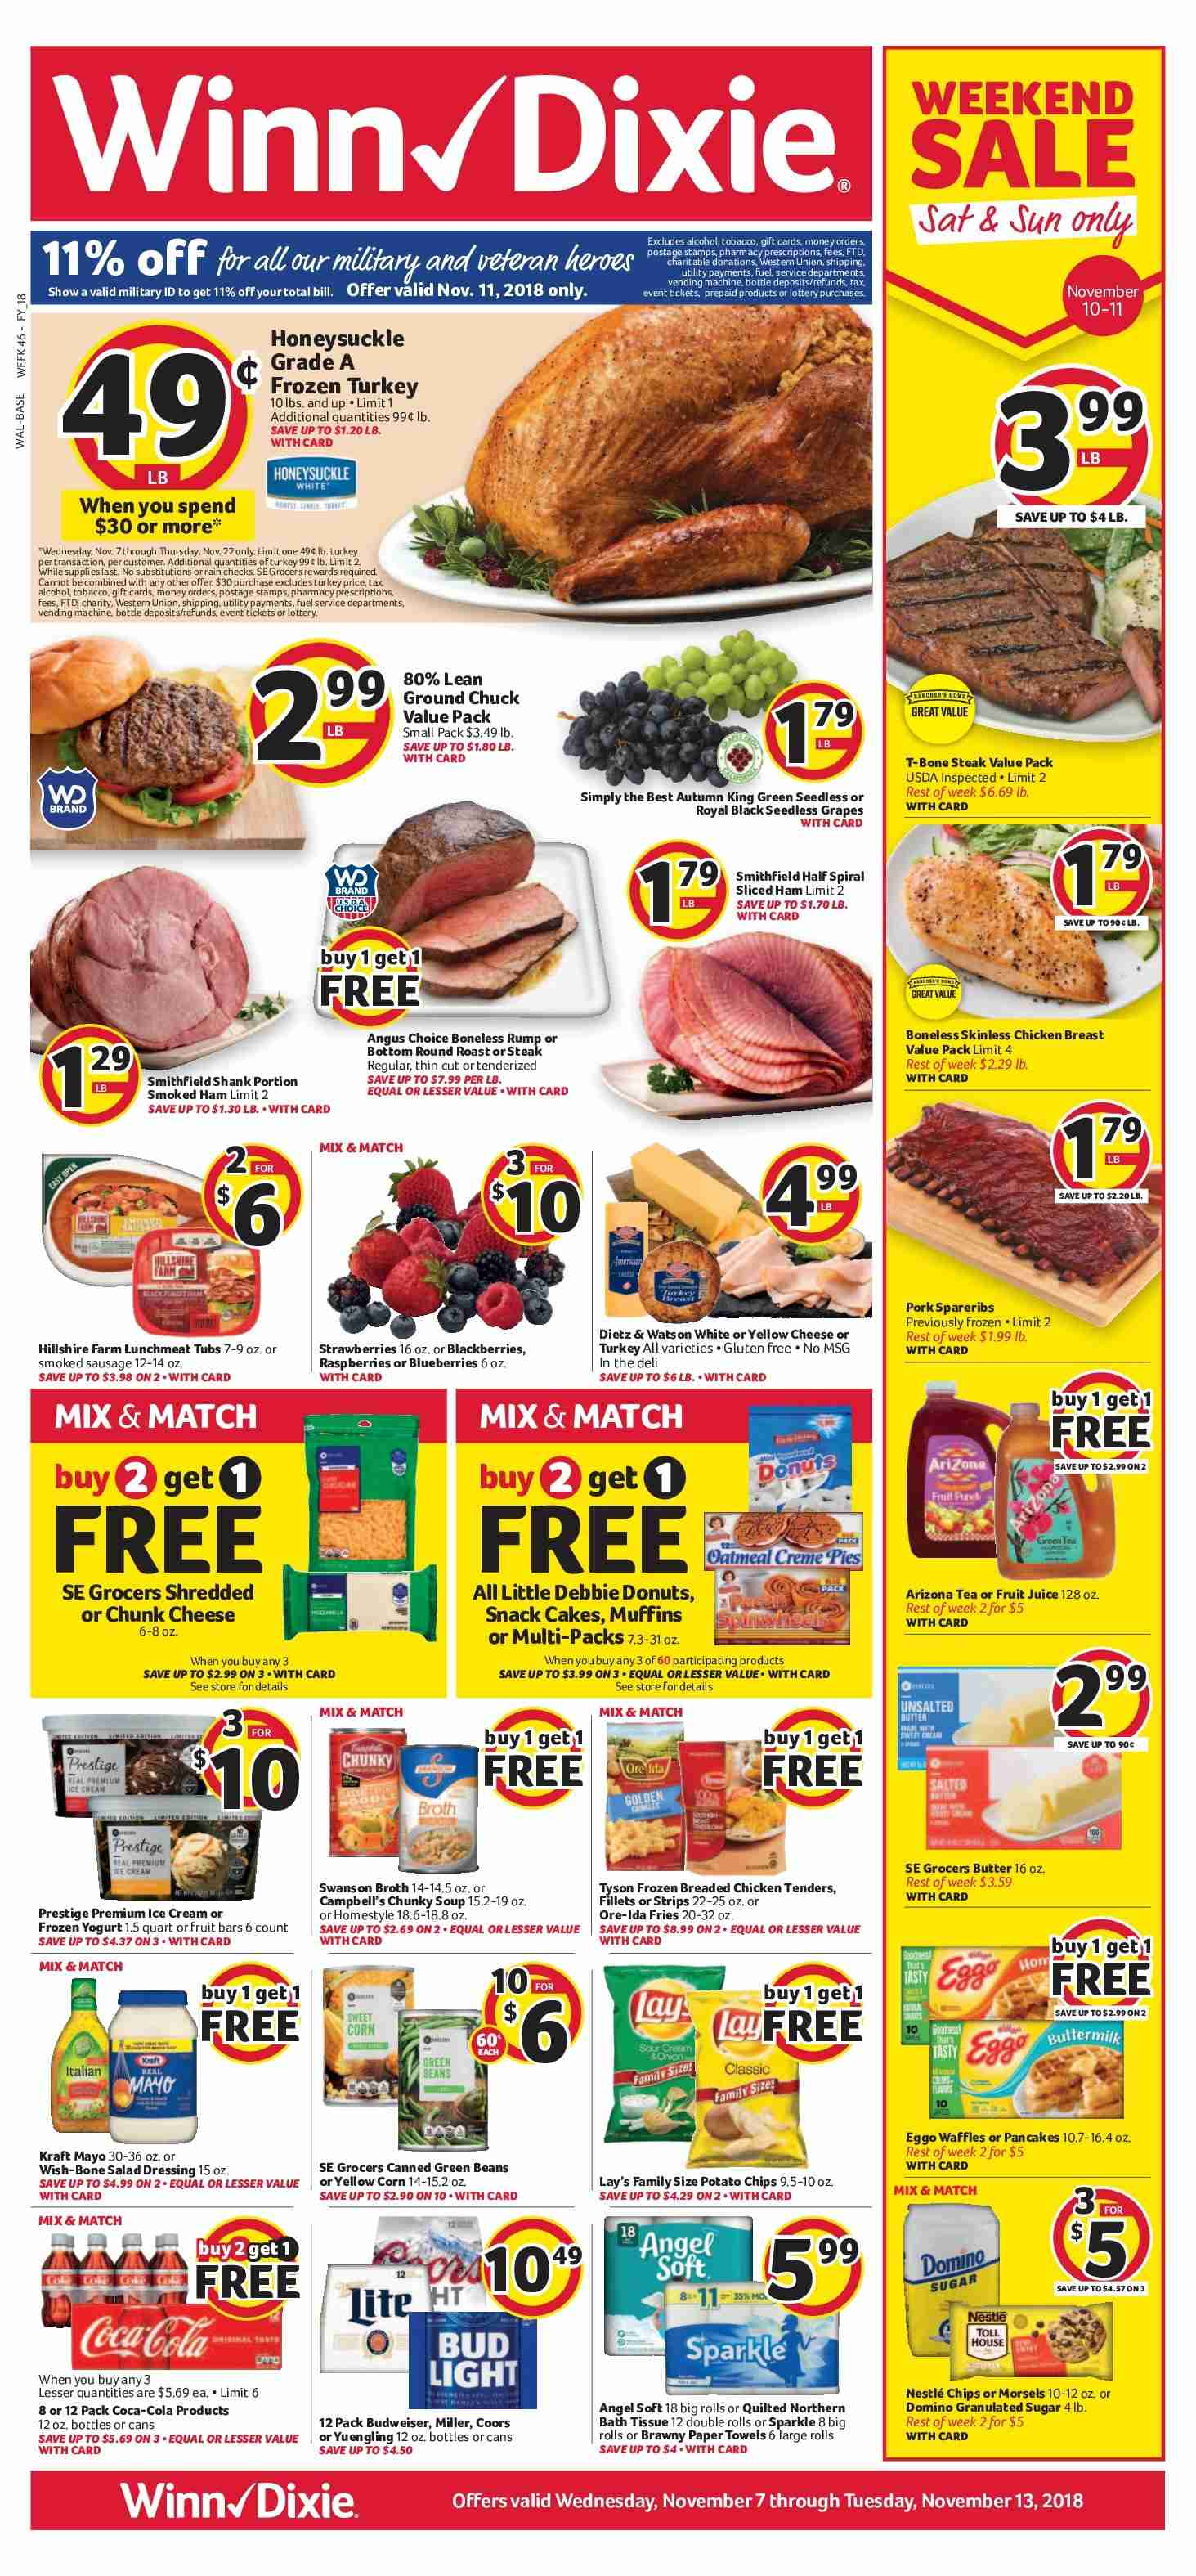 Winn Dixie Flyer - 11.07.2018 - 11.13.2018 - Sales products - Budweiser, Bud Light, Coors, Yuengling, corn, green beans, blackberries, blueberries, grapes, raspberries, seedless grapes, strawberries, rolls, cake, donut, pancake, muffin, turkey, chicken, chicken breast, chicken tenders, steak, Campbell's, soup, ham, Hillshire Farm, smoked ham, sausage, smoked sausage, cheese, butter, ice cream, beans, potato chips, chips, snack, Lay's, Coca-Cola, bath tissue, paper towel, Quilted Northern, muffins. Page 1.